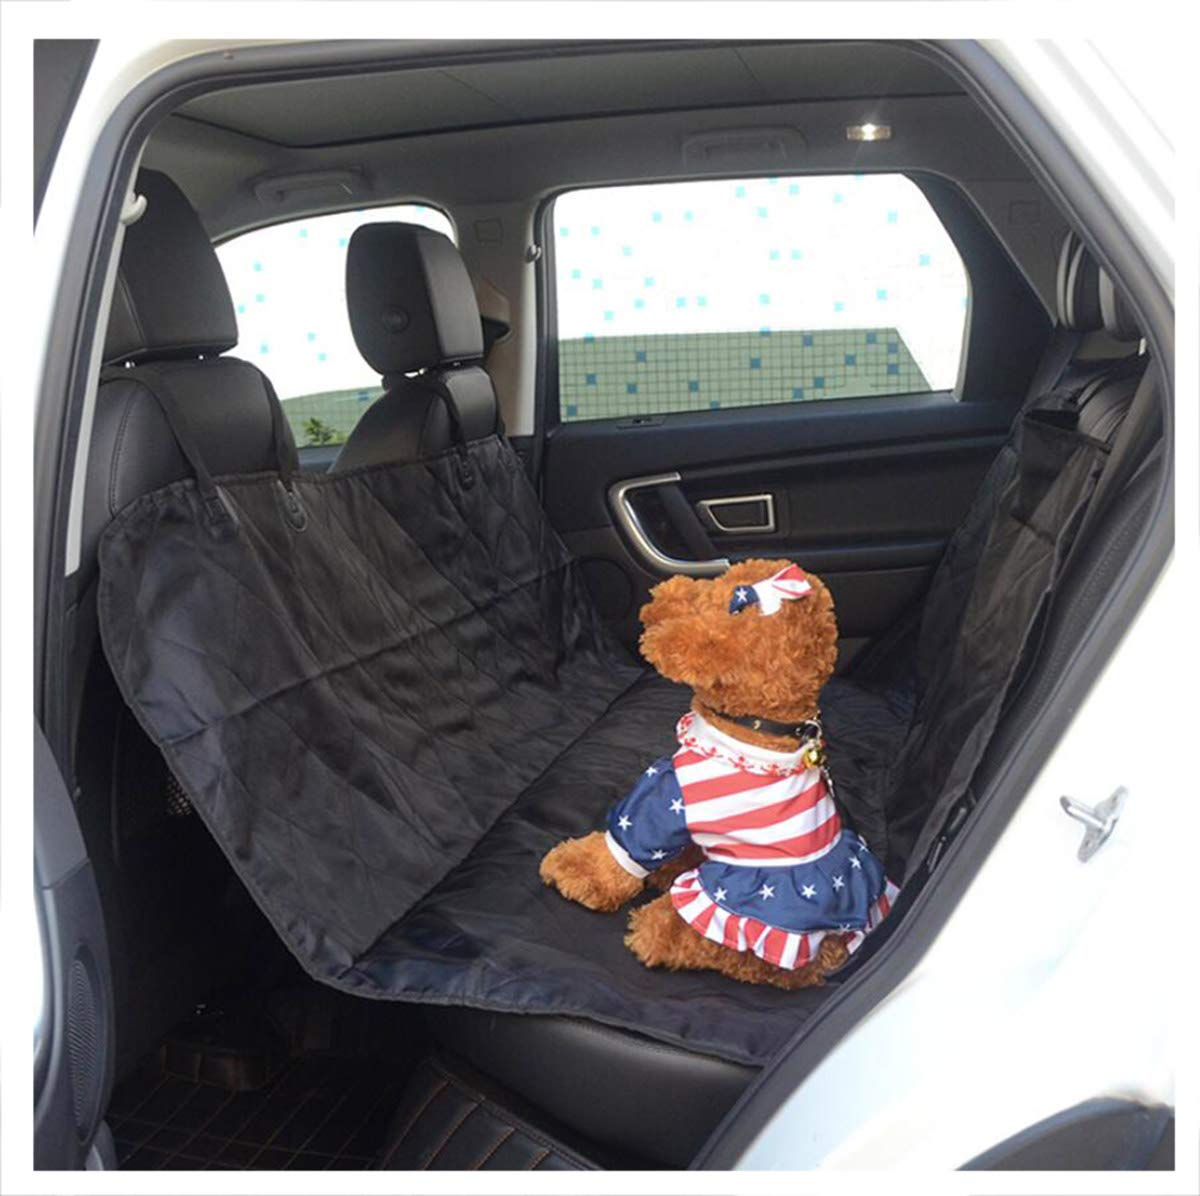 Black 147X135CM Black 147X135CM BYCDD Pet Back Seat Covers, Dog Car Seat Covers Waterproof Cover Predector Durable Scratch Proof Nonslip Predection Against Dirt Fits Most Cars Trucks SUVs,Black_147X135CM